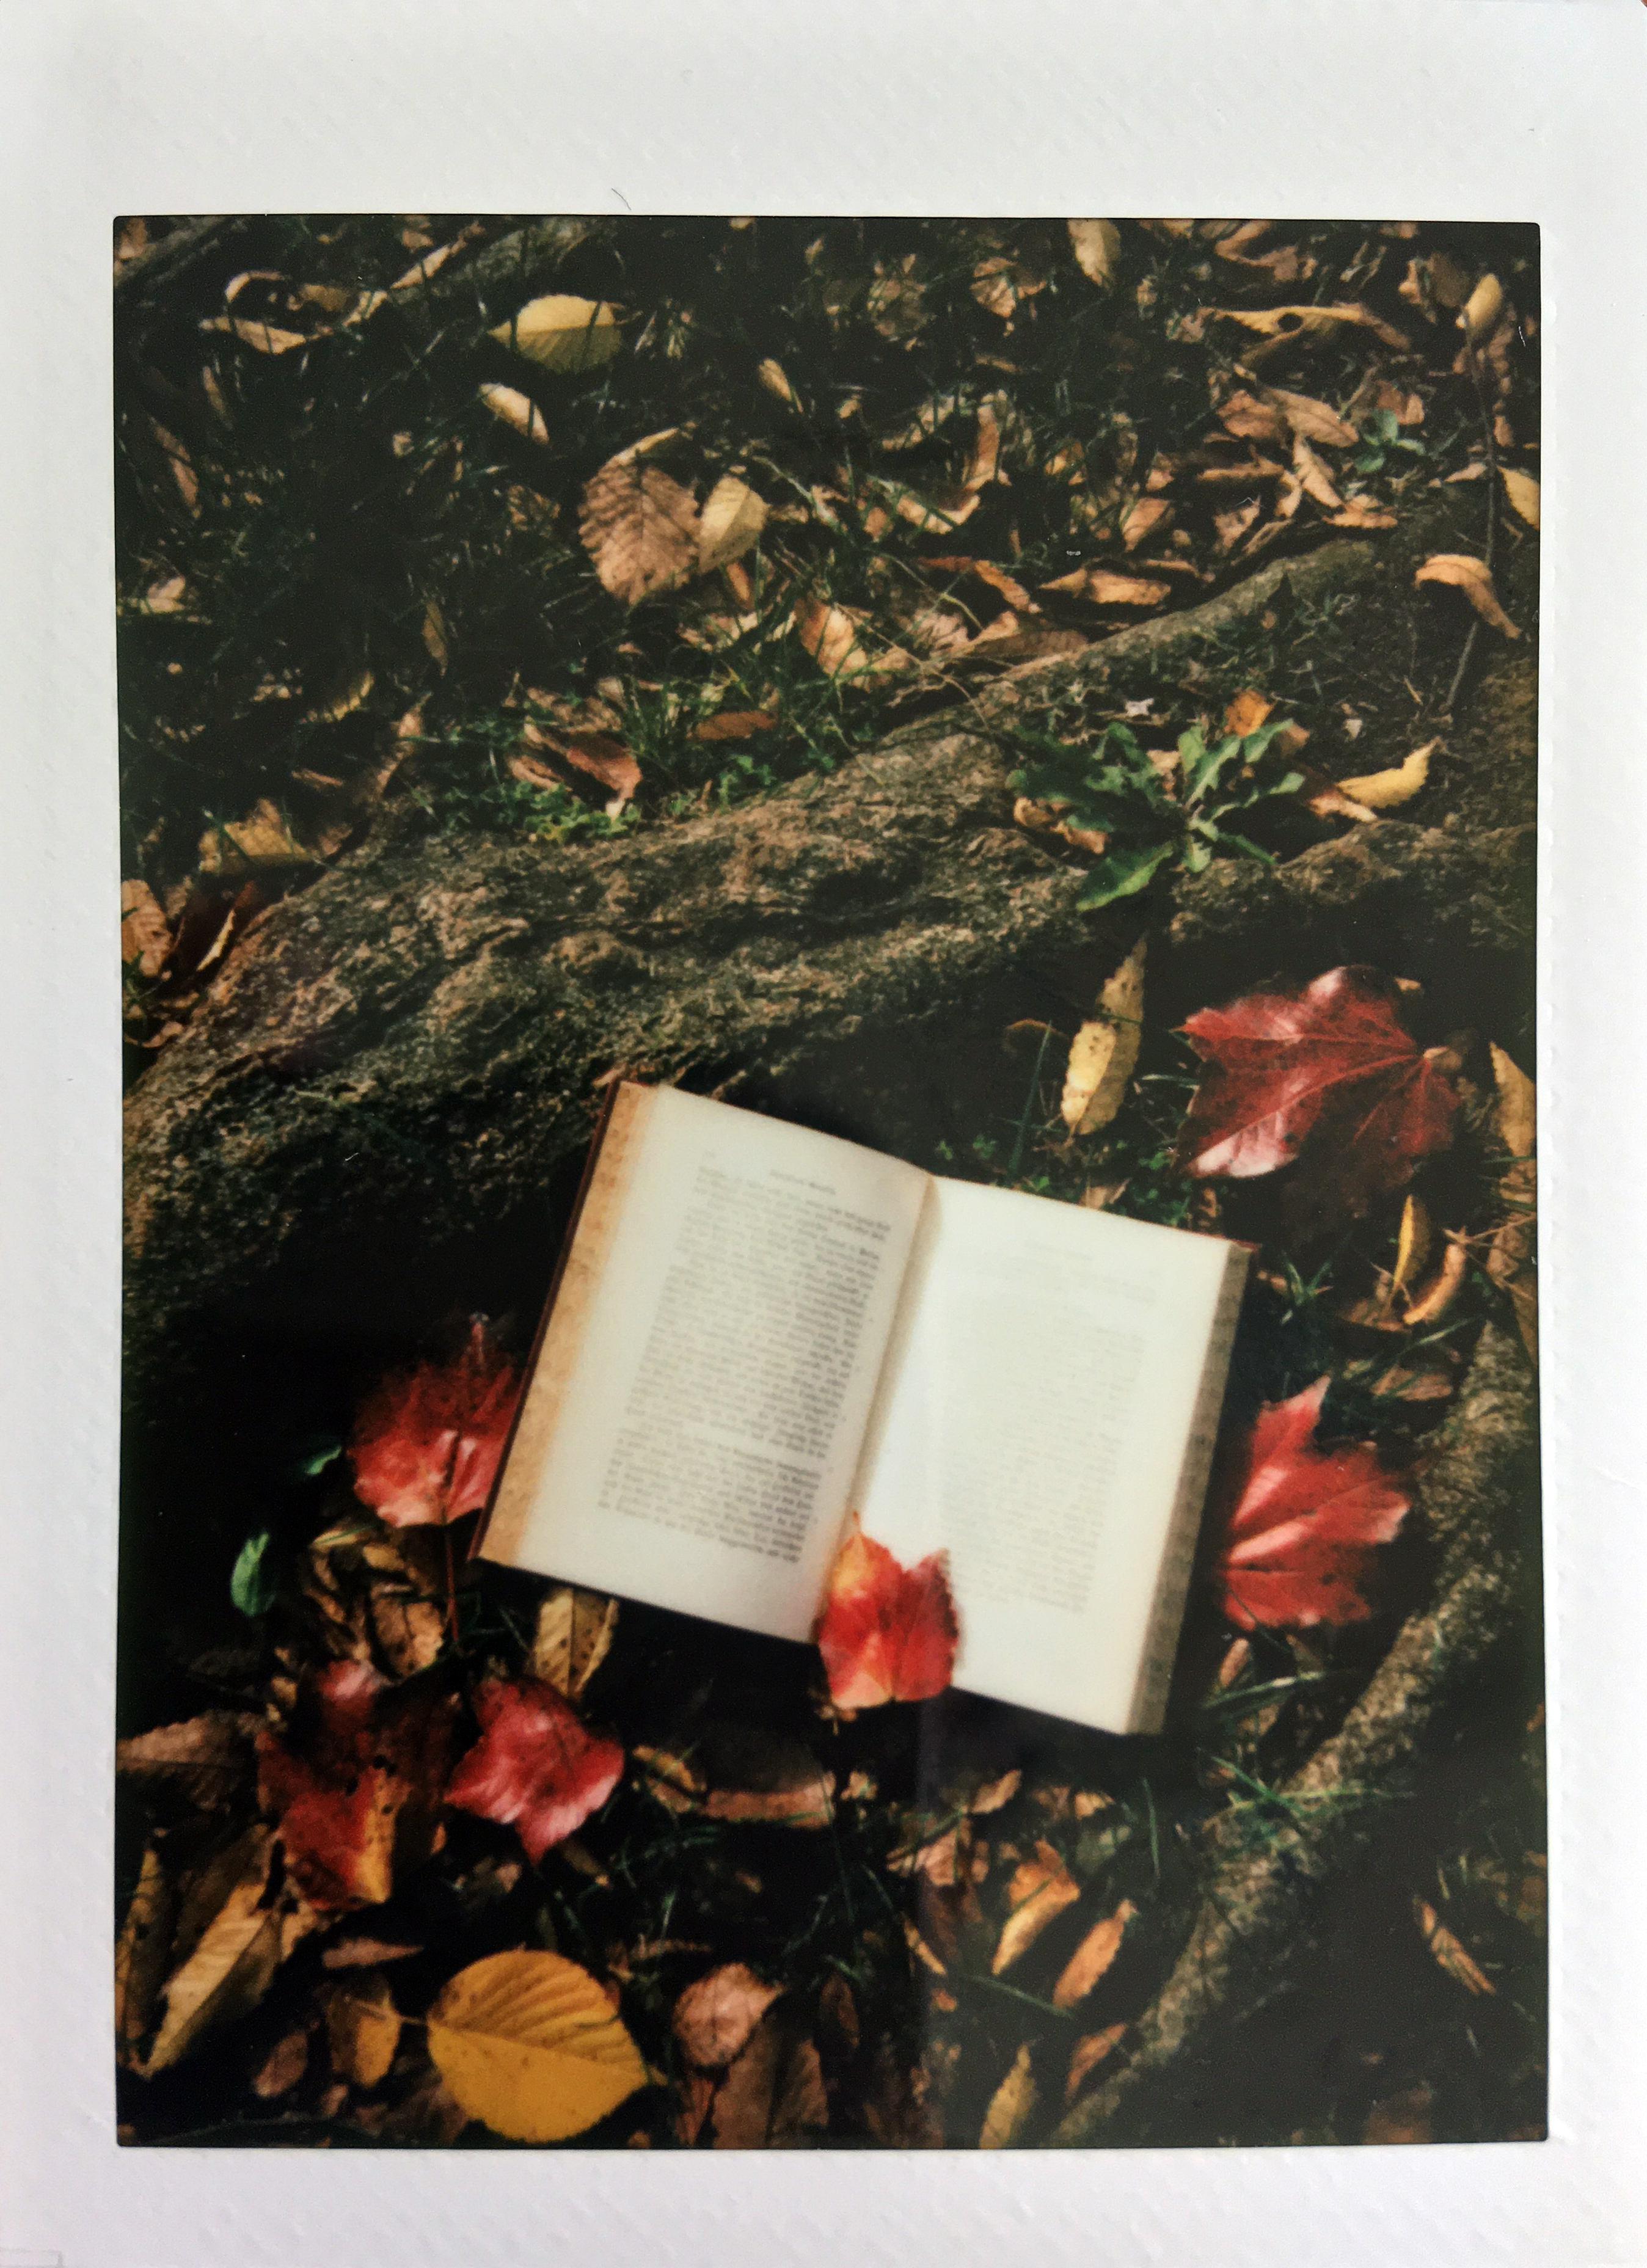 Photo of Opened Book Near Dry Leaves